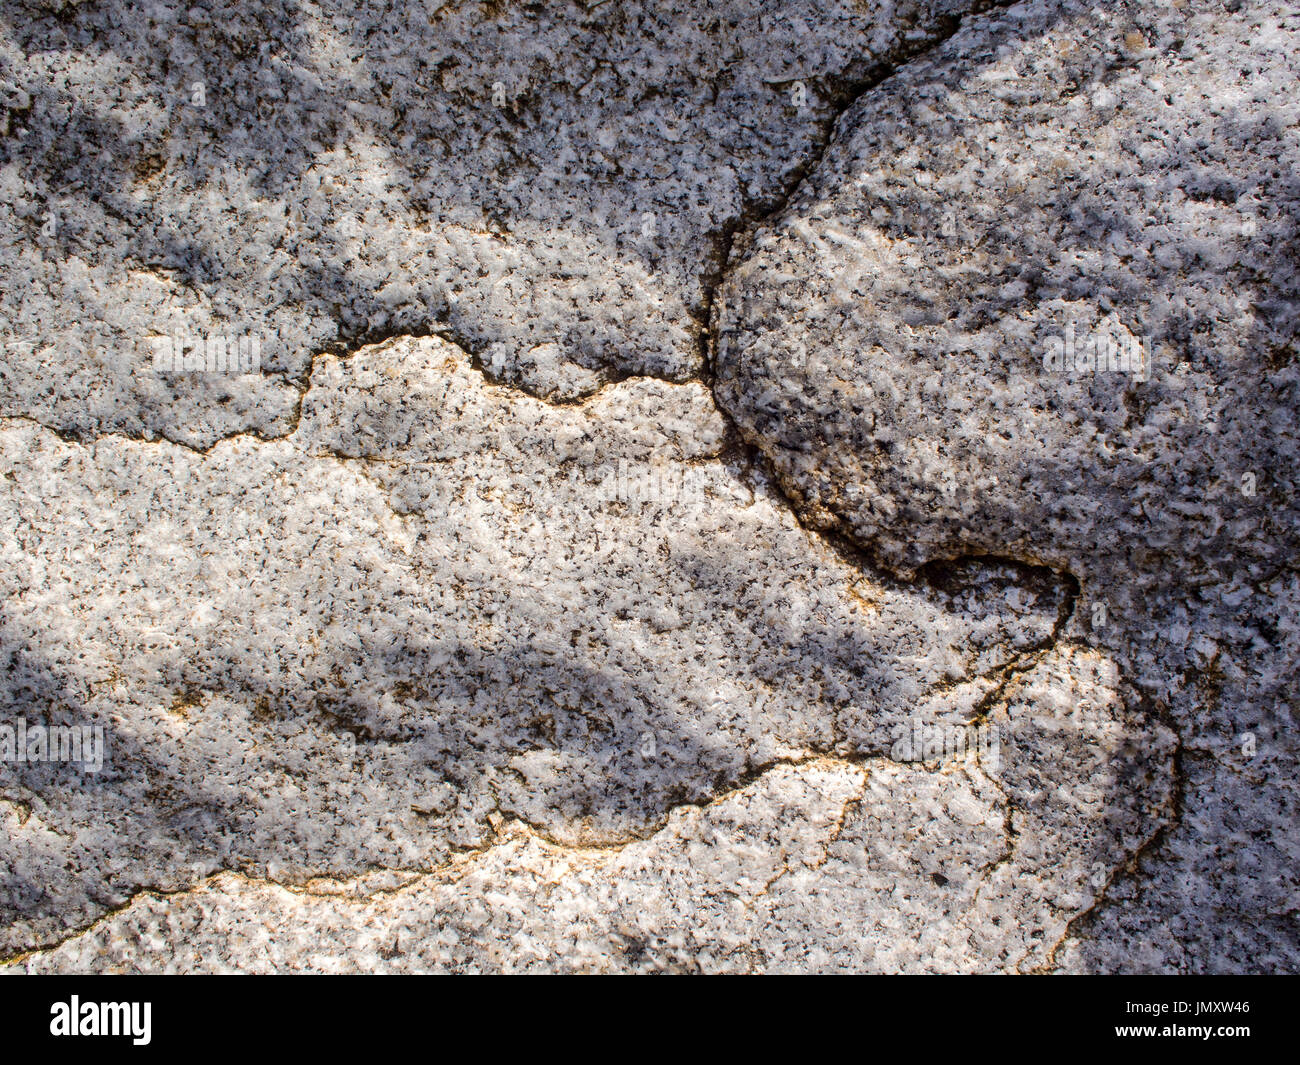 Detail of cracks in the weathered surface of granite rock on a seashore. Stock Photo